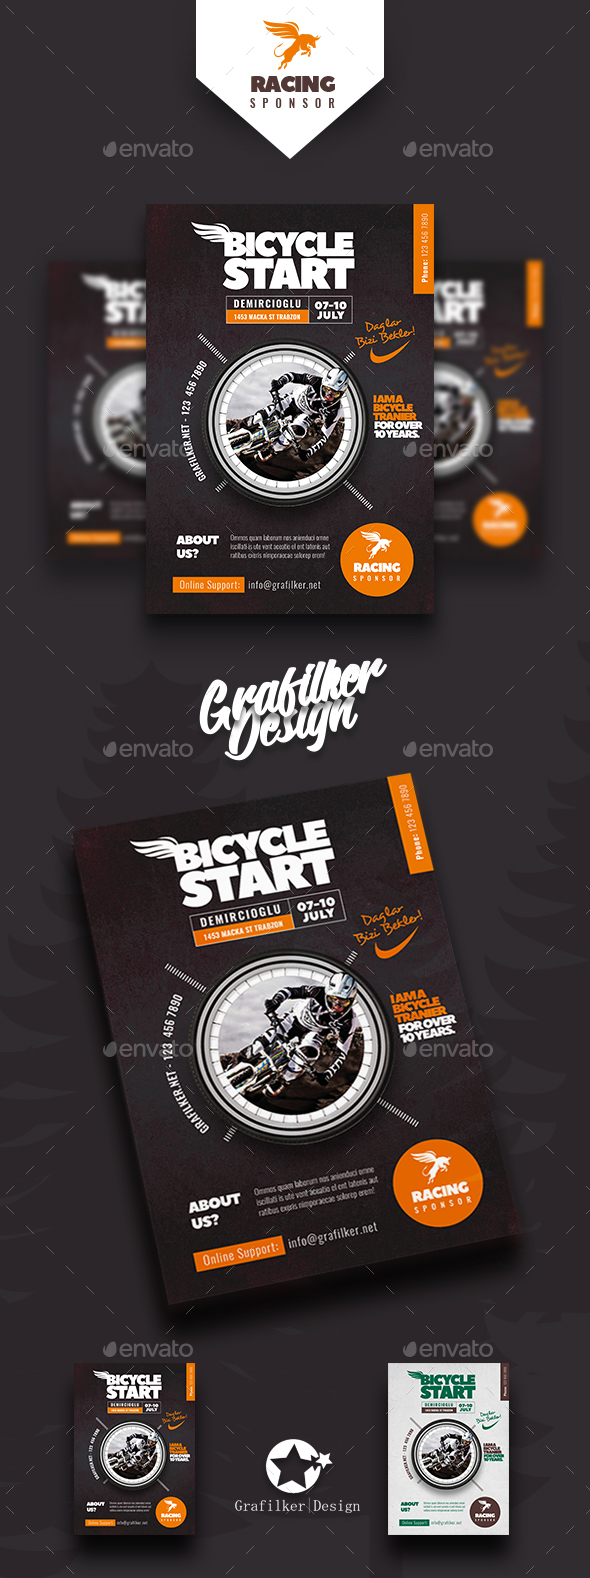 Bicycle Racing Flyer Templates - Corporate Flyers